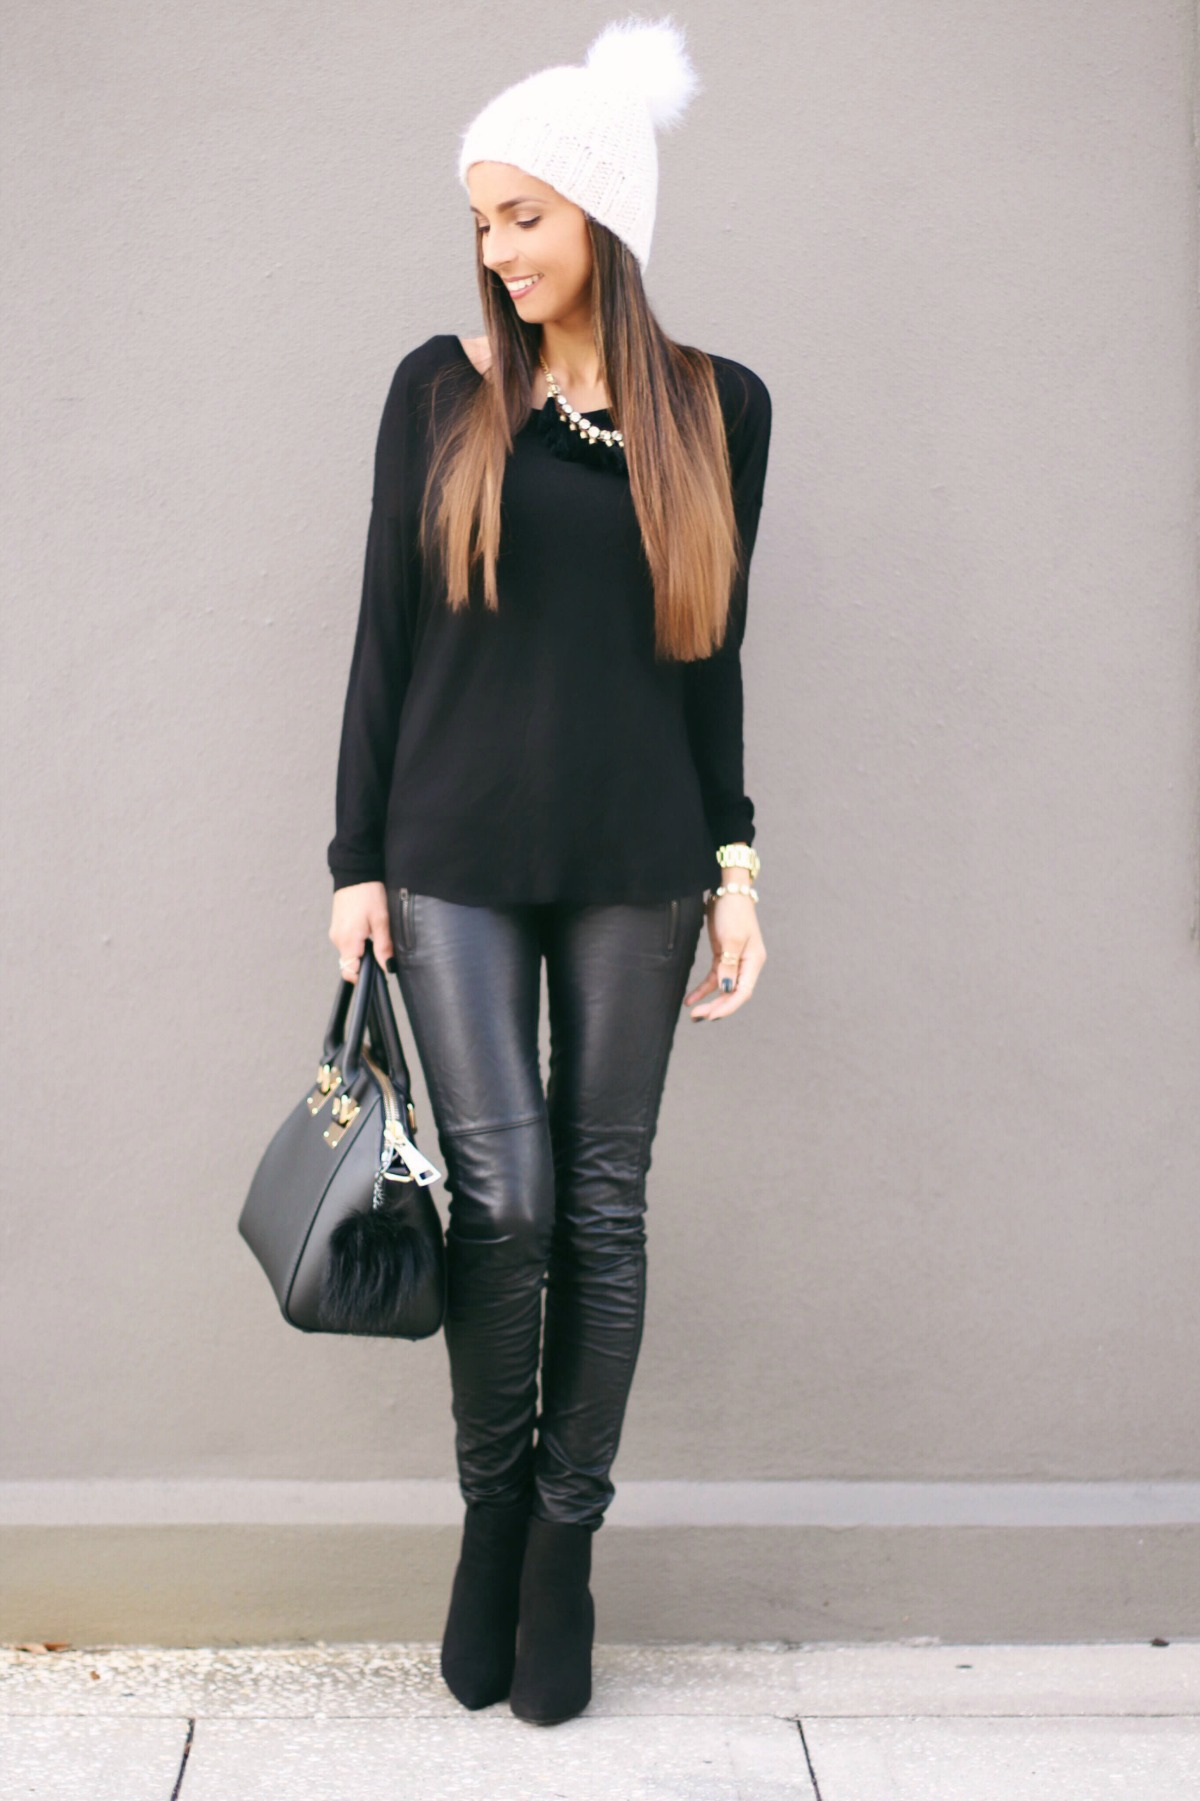 Black leather pants and white beanie hat